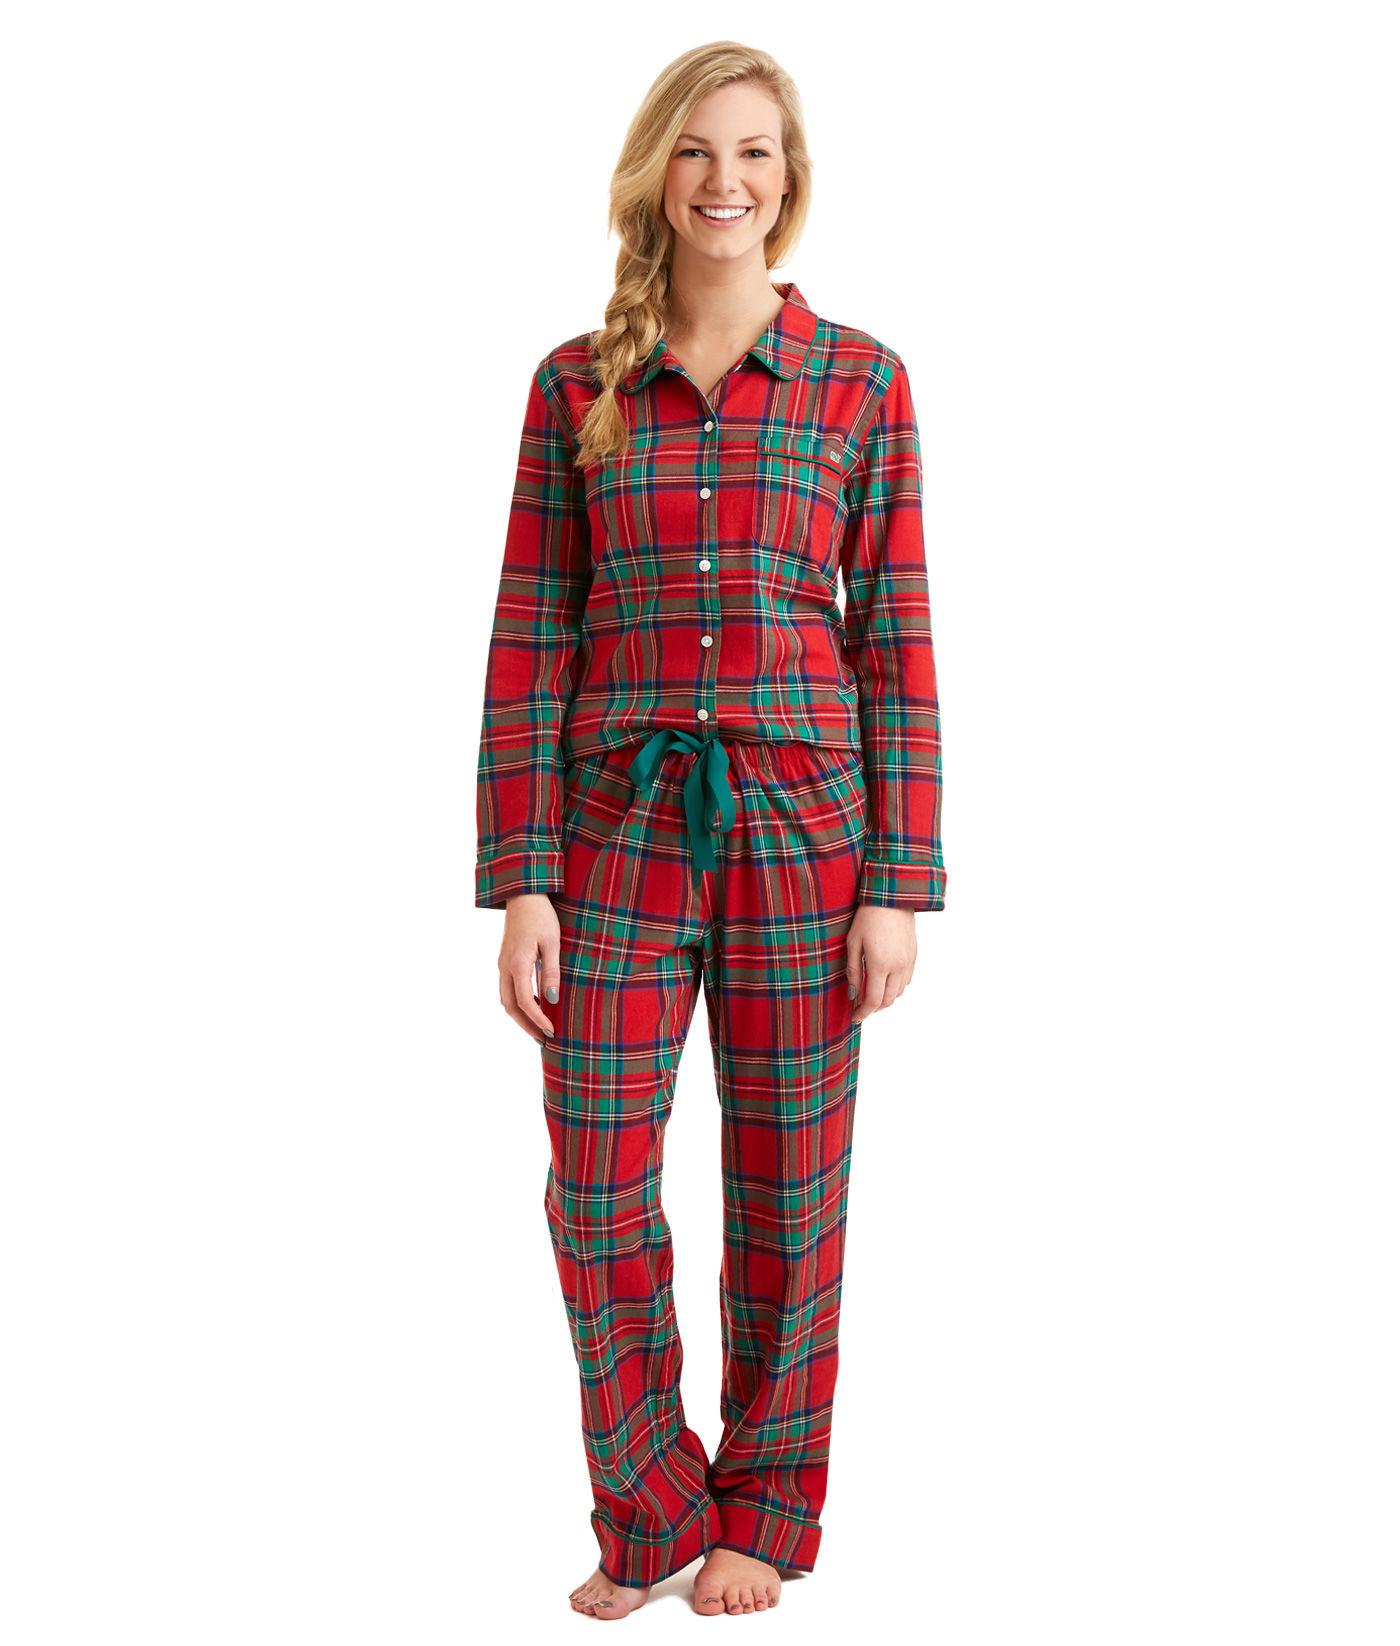 d0039f73c4 Lyst - Vineyard Vines Jolly Plaid Flannel Lounge Set in Red